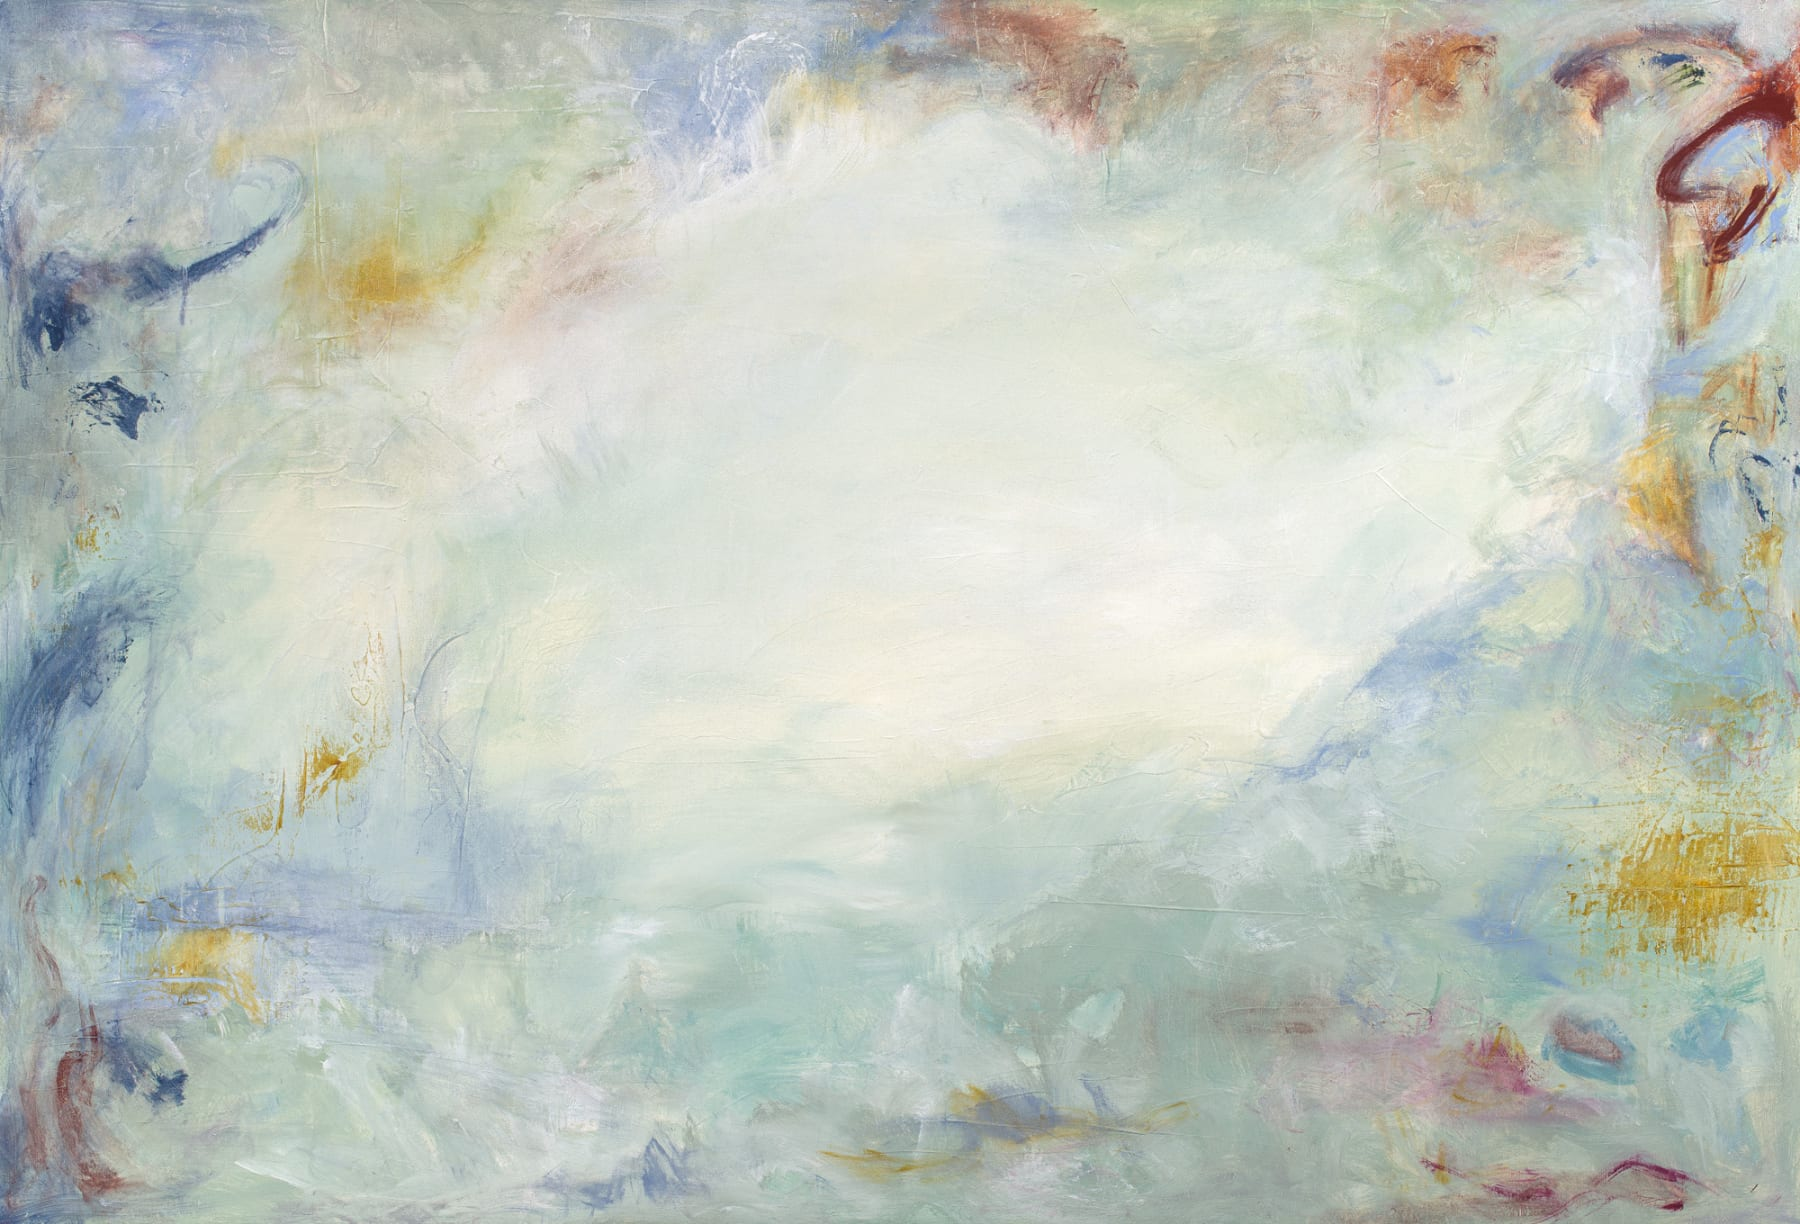 Patricia Qualls, A Tranquil Space, 2020